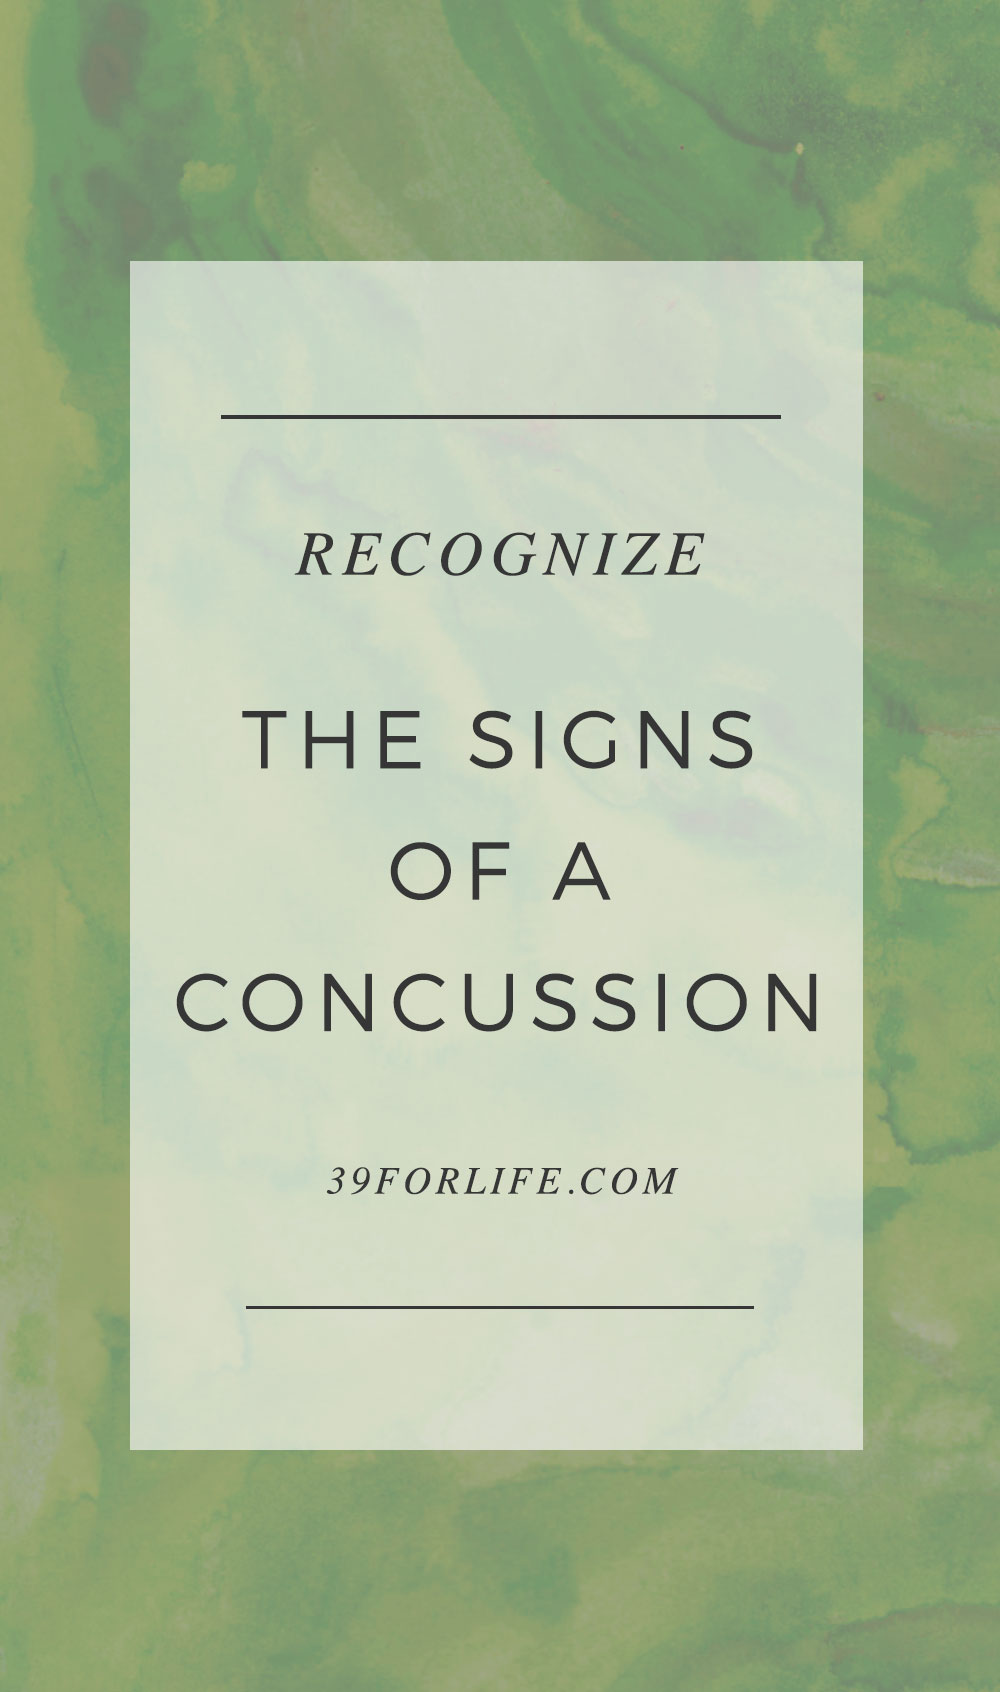 How to recognize the signs of a concussion and when you should see a doctor for a possible brain injury.